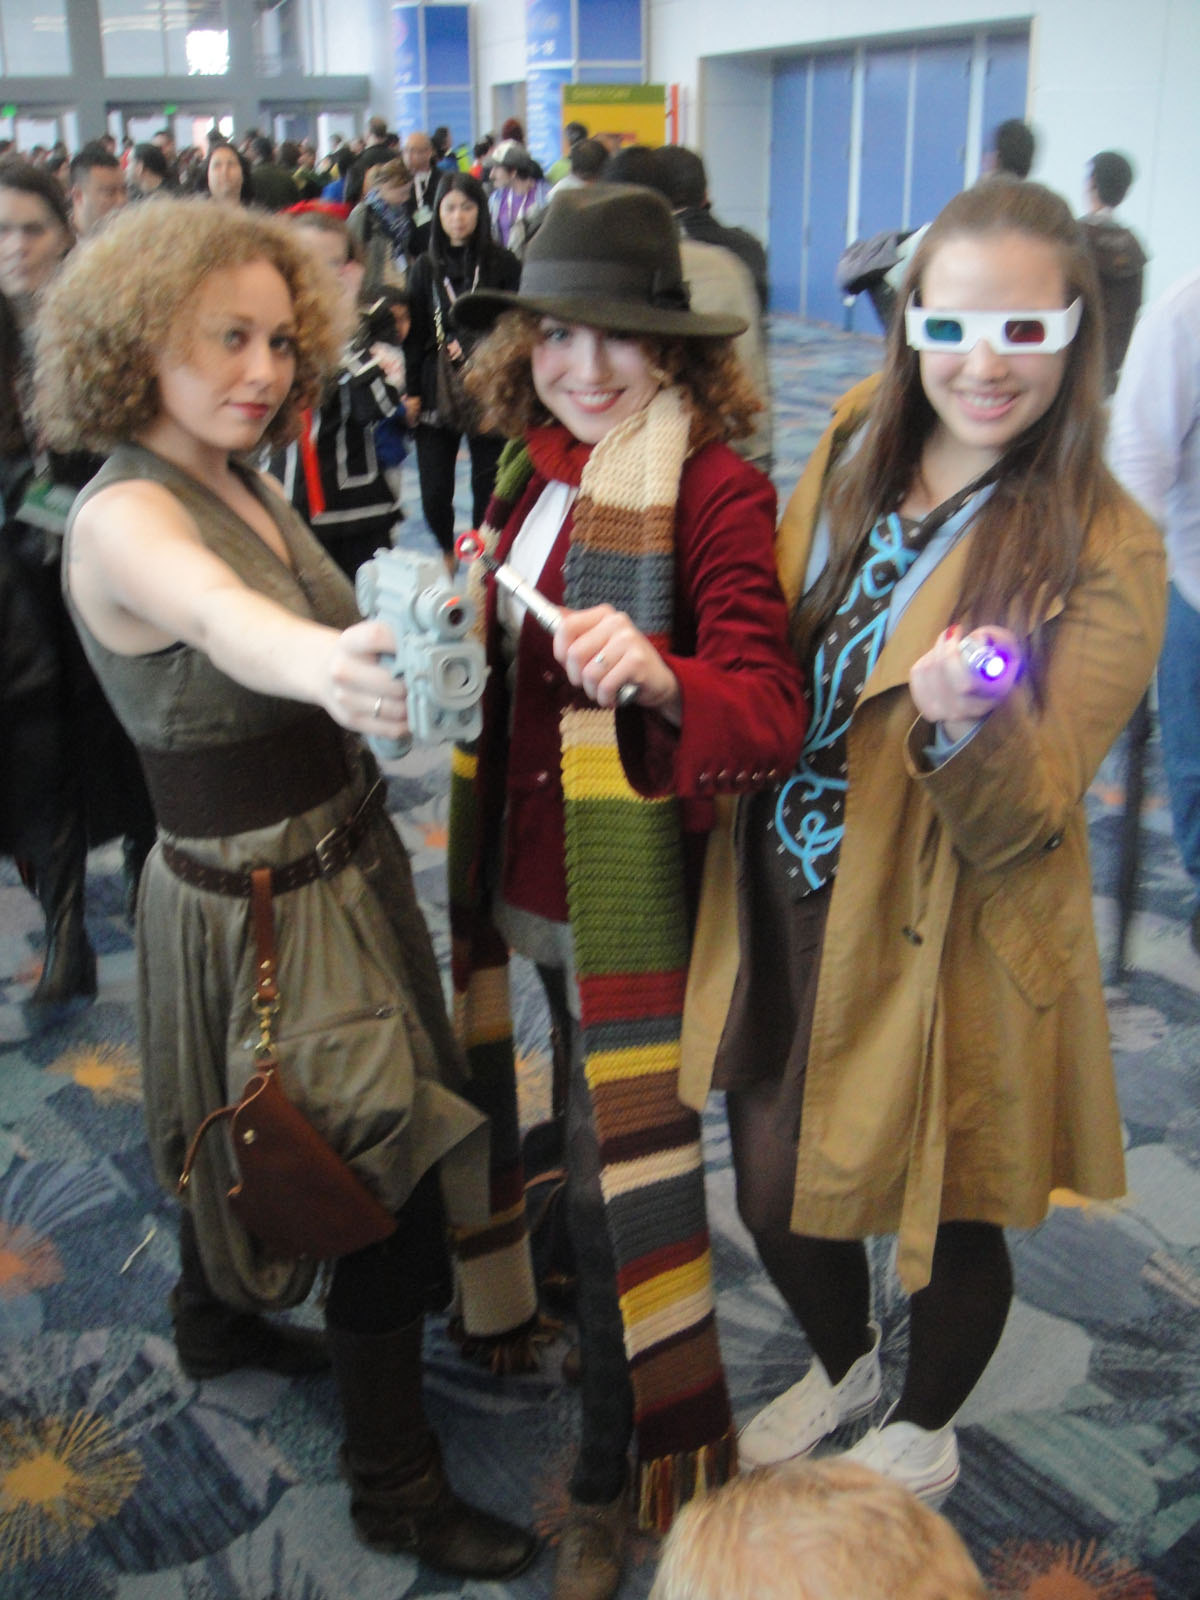 Doctor Who - Community - Google+  Doctor Who Cosplay